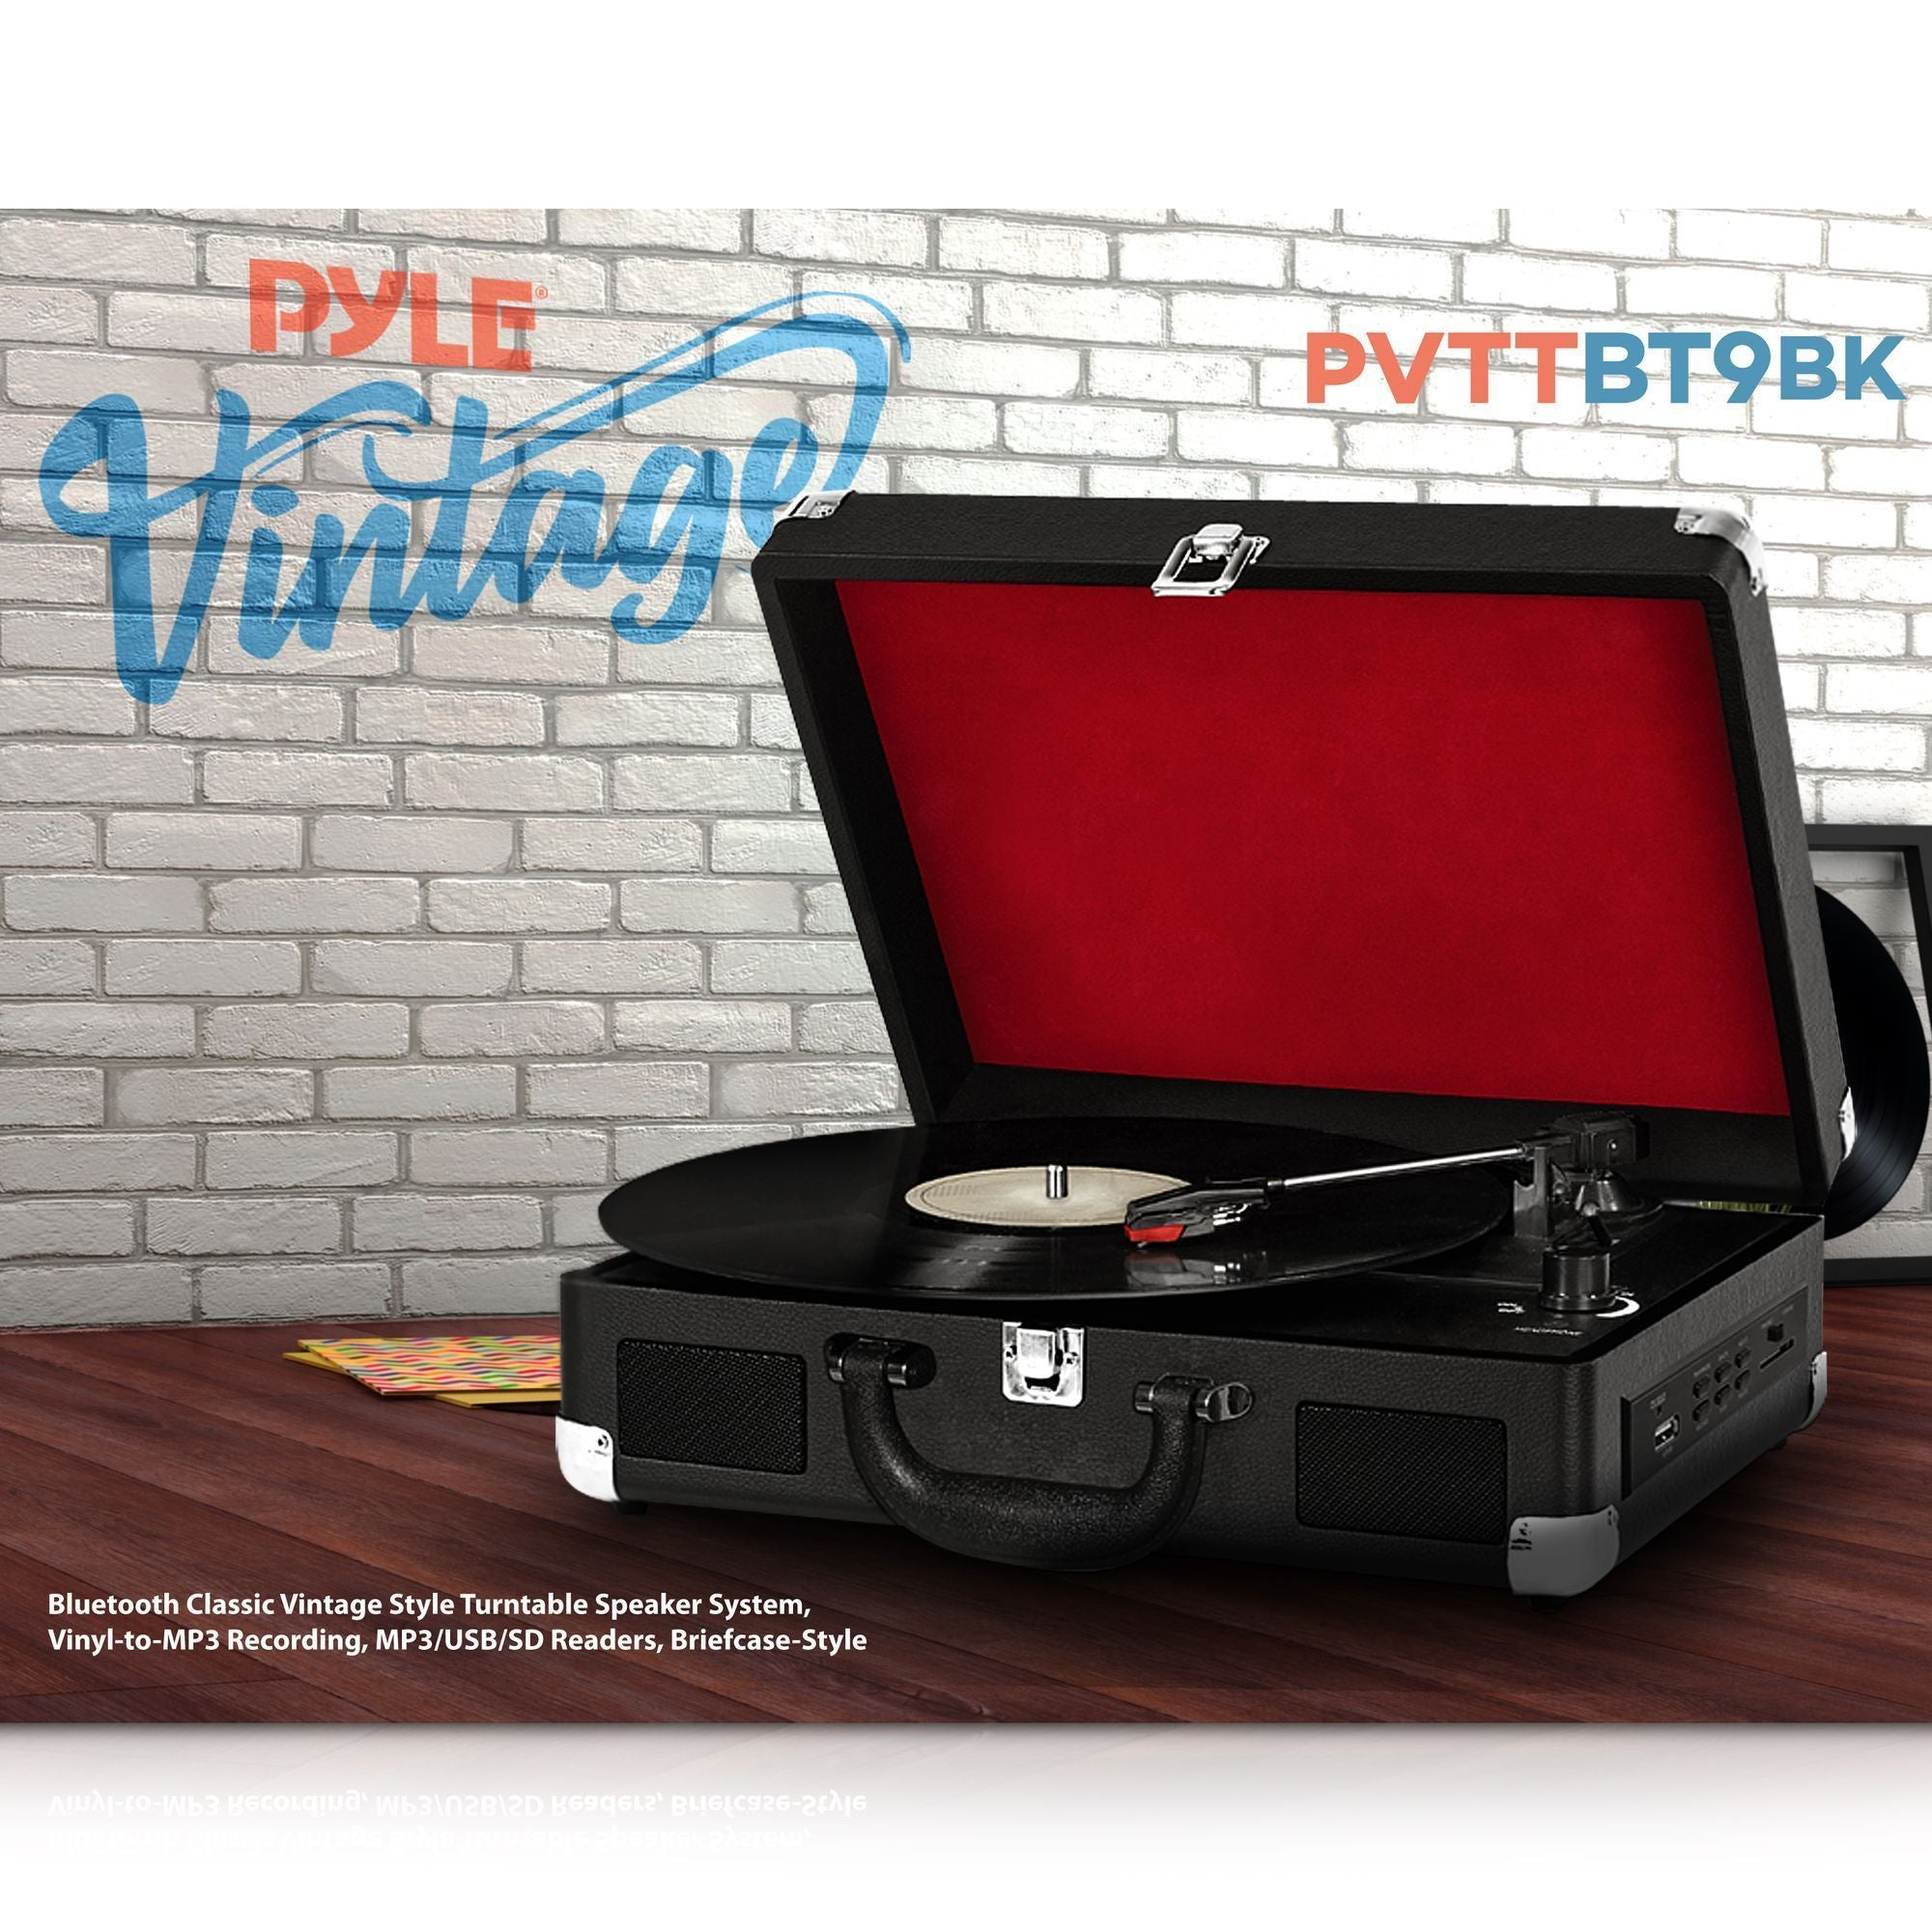 Bluetooth Compatible Classic Vintage Turntable - Retro Briefcase Style Record Player Speaker System w/ 3-Speed, Vinyl to Digital MP3 Converter, Phono USB SD Slot, AUX, RCA - Pyle PVTTBT9BK (Black)